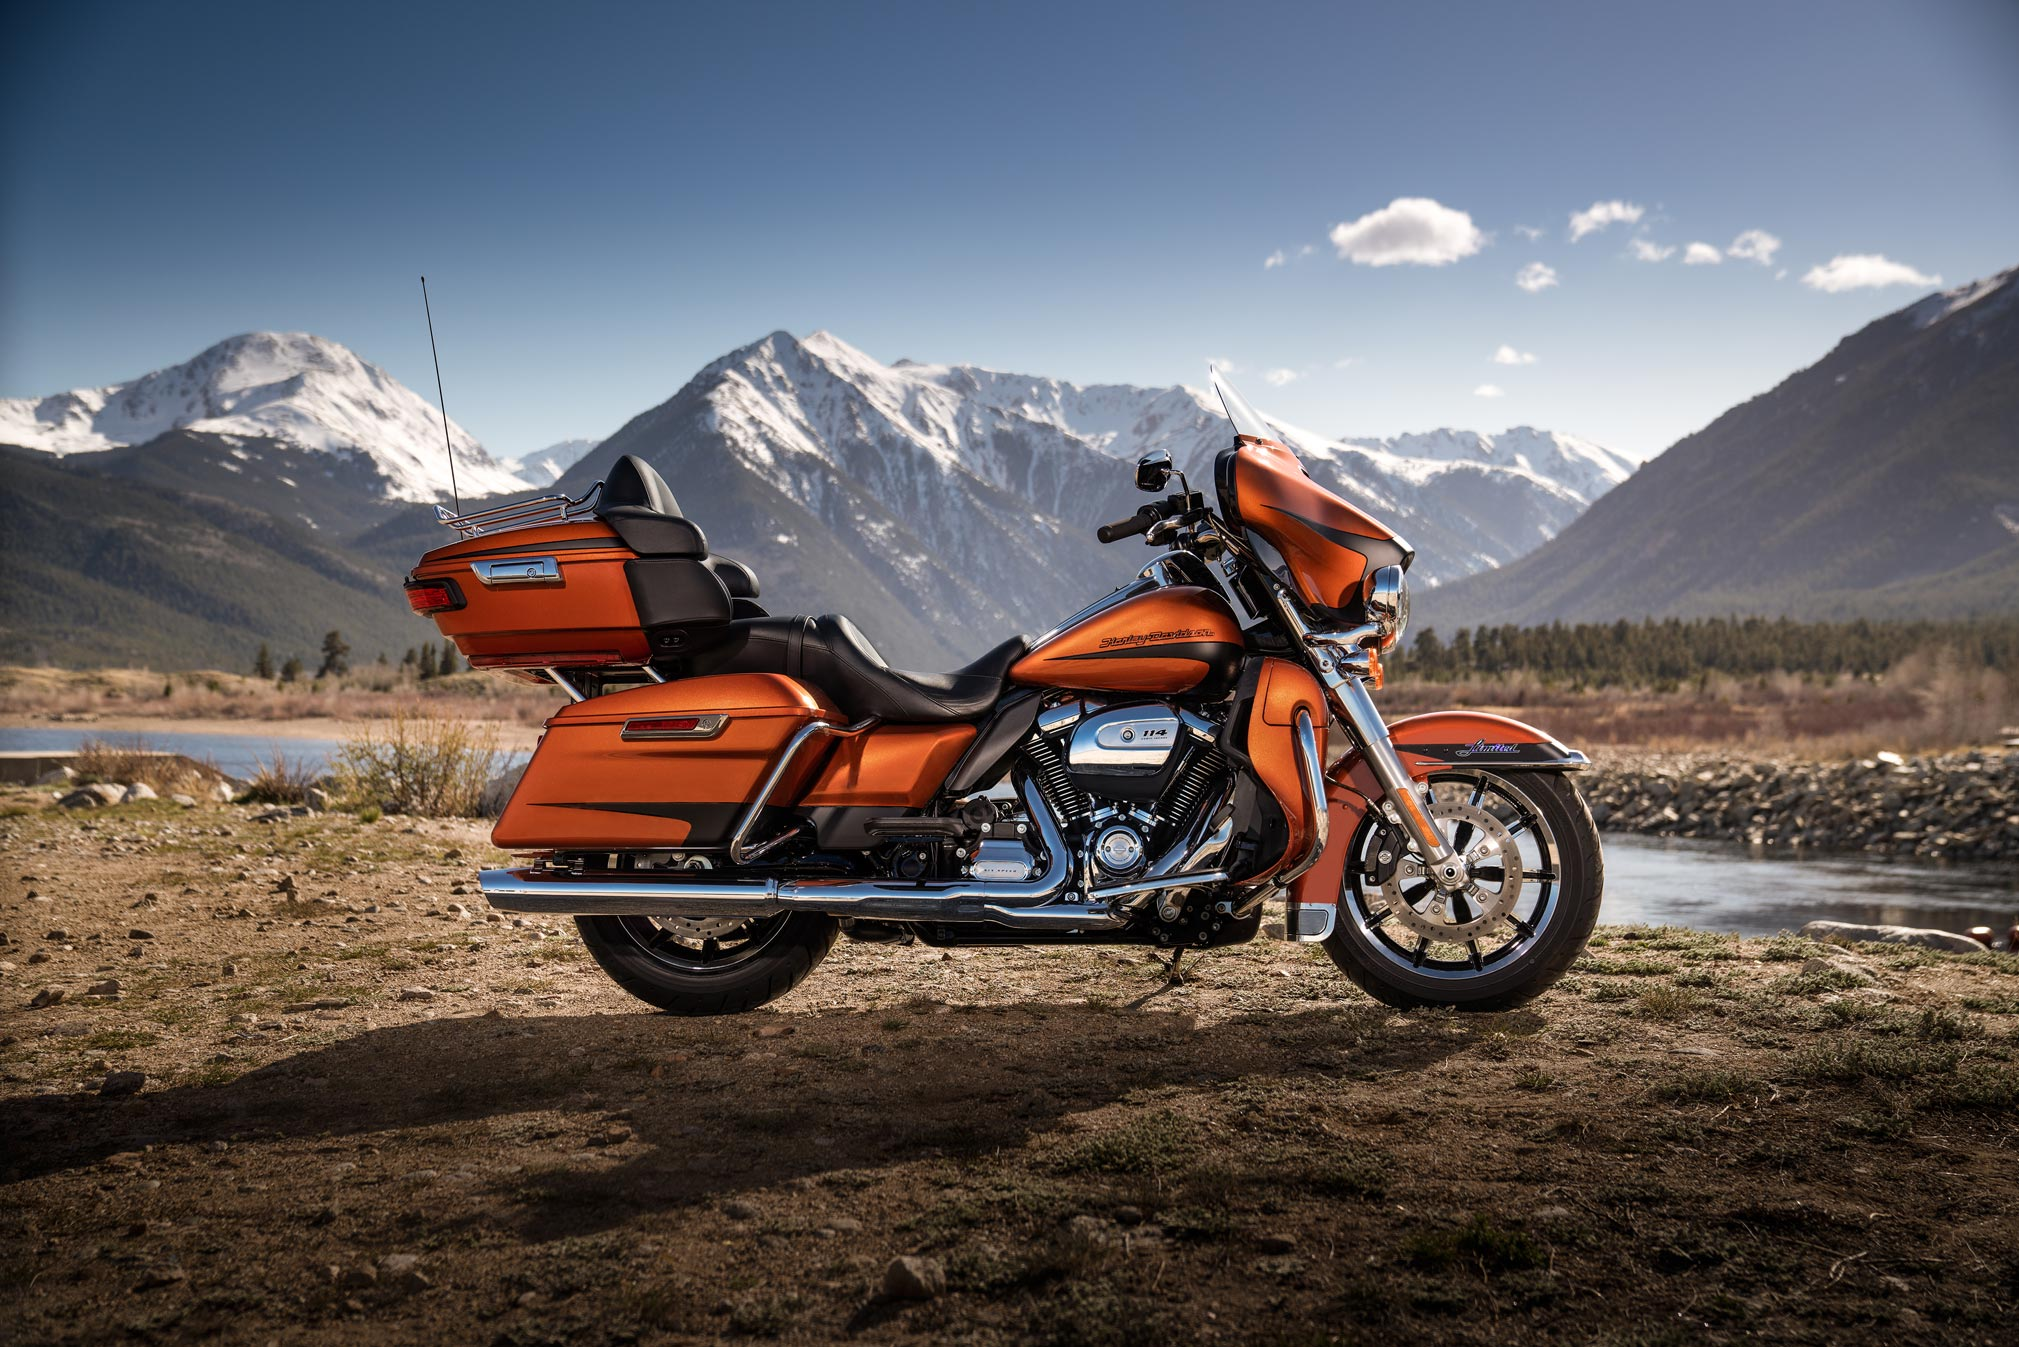 2019 Harley-Davidson Ultra Limited Guide • Total Motorcycle